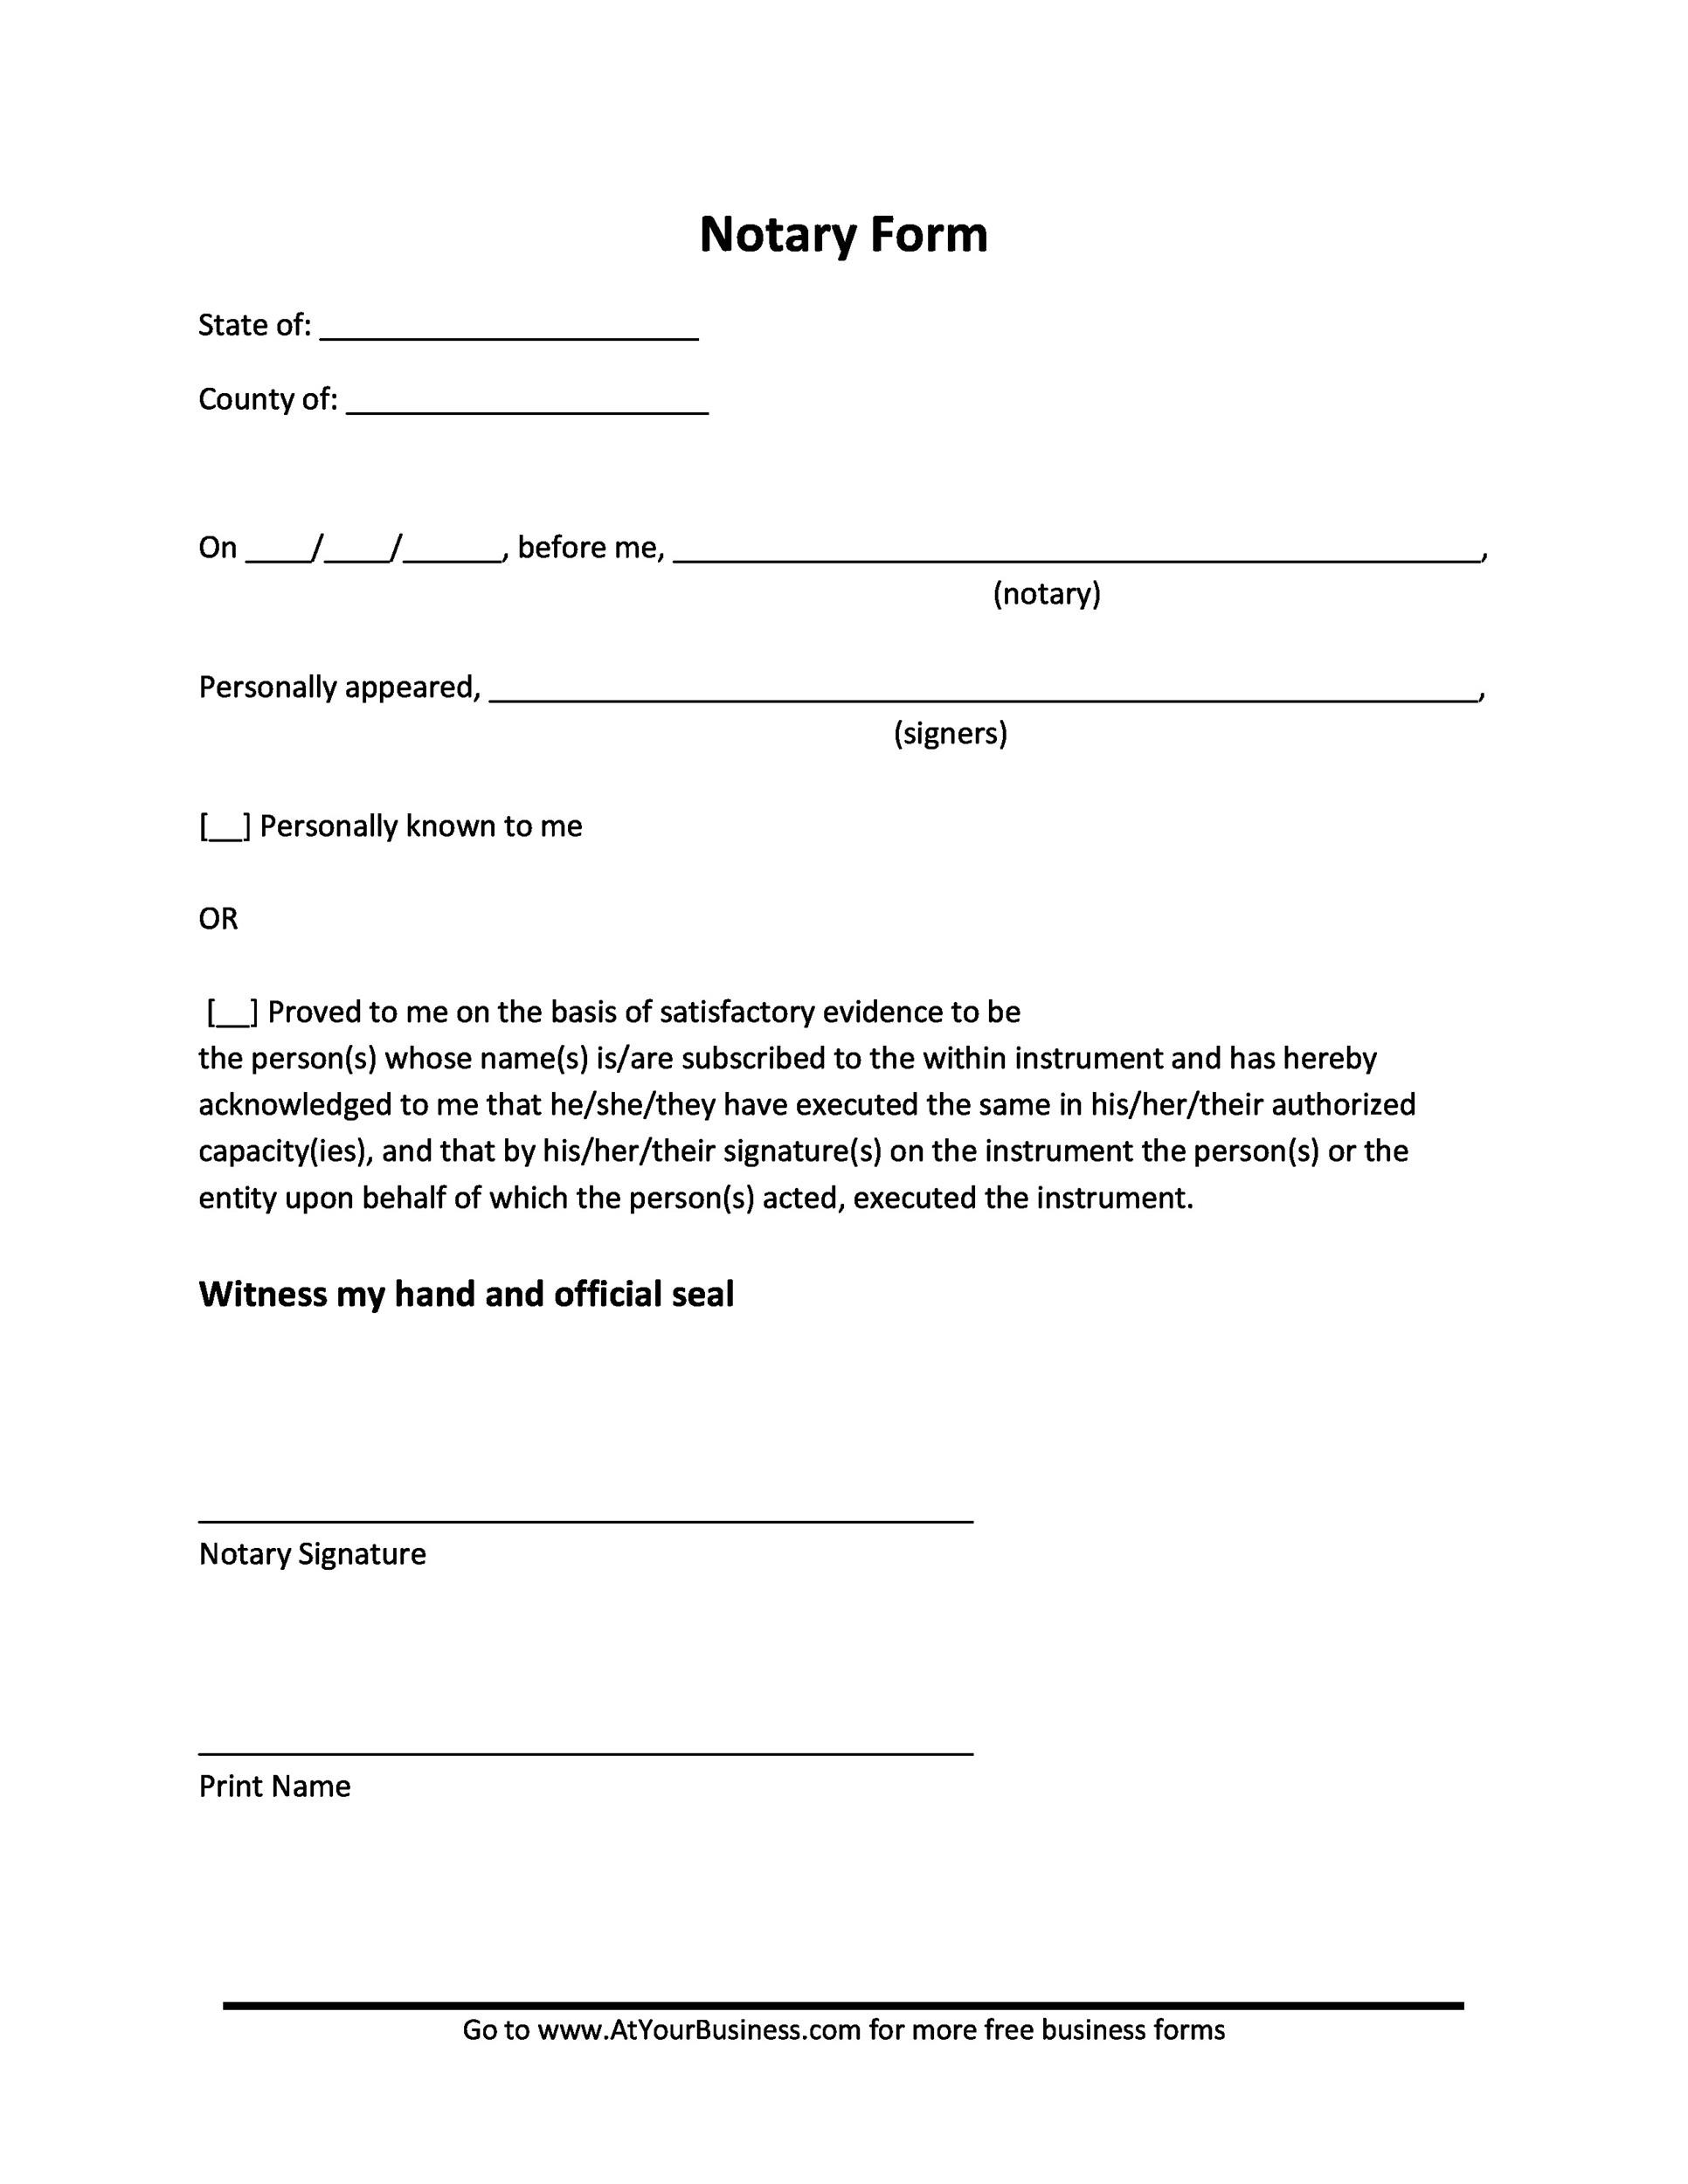 Security Bank Loan Application Form